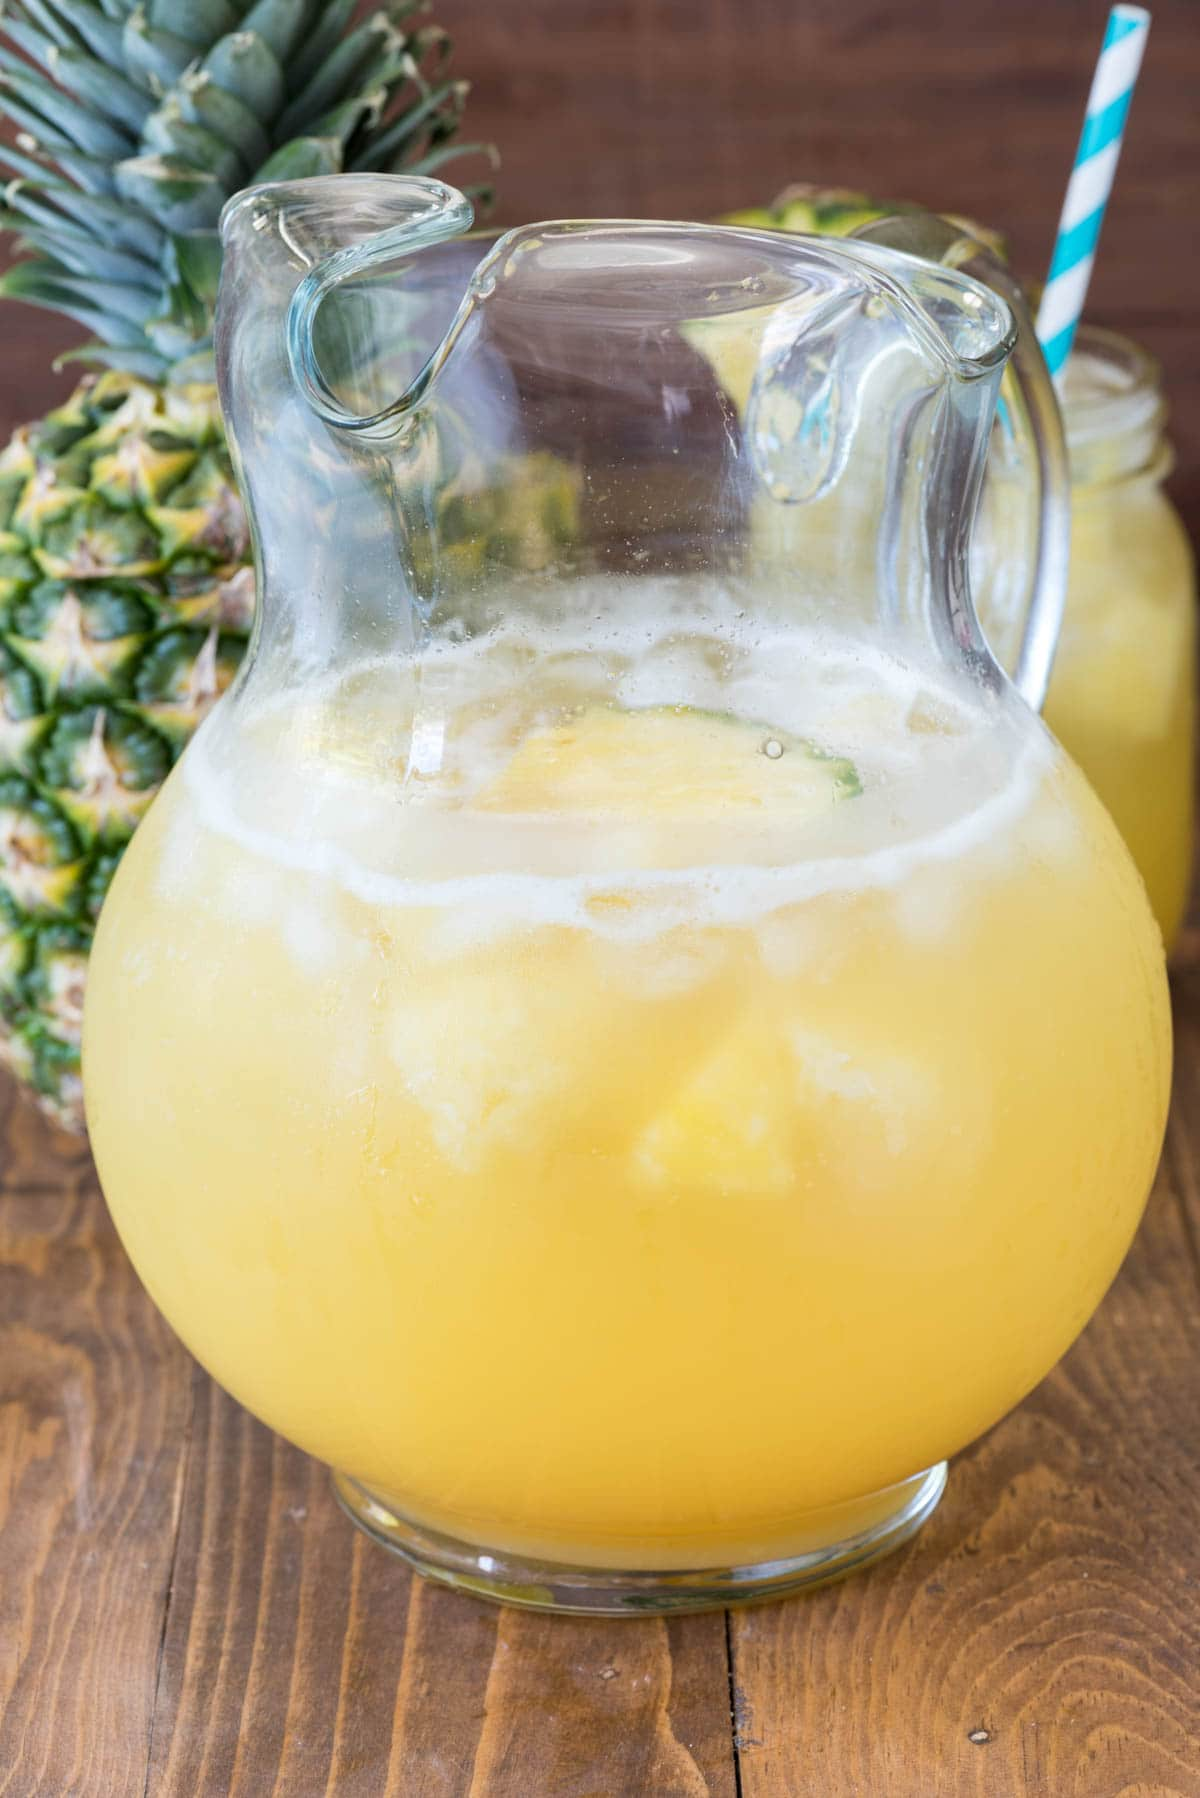 Pitched of Pineapple Party Punch